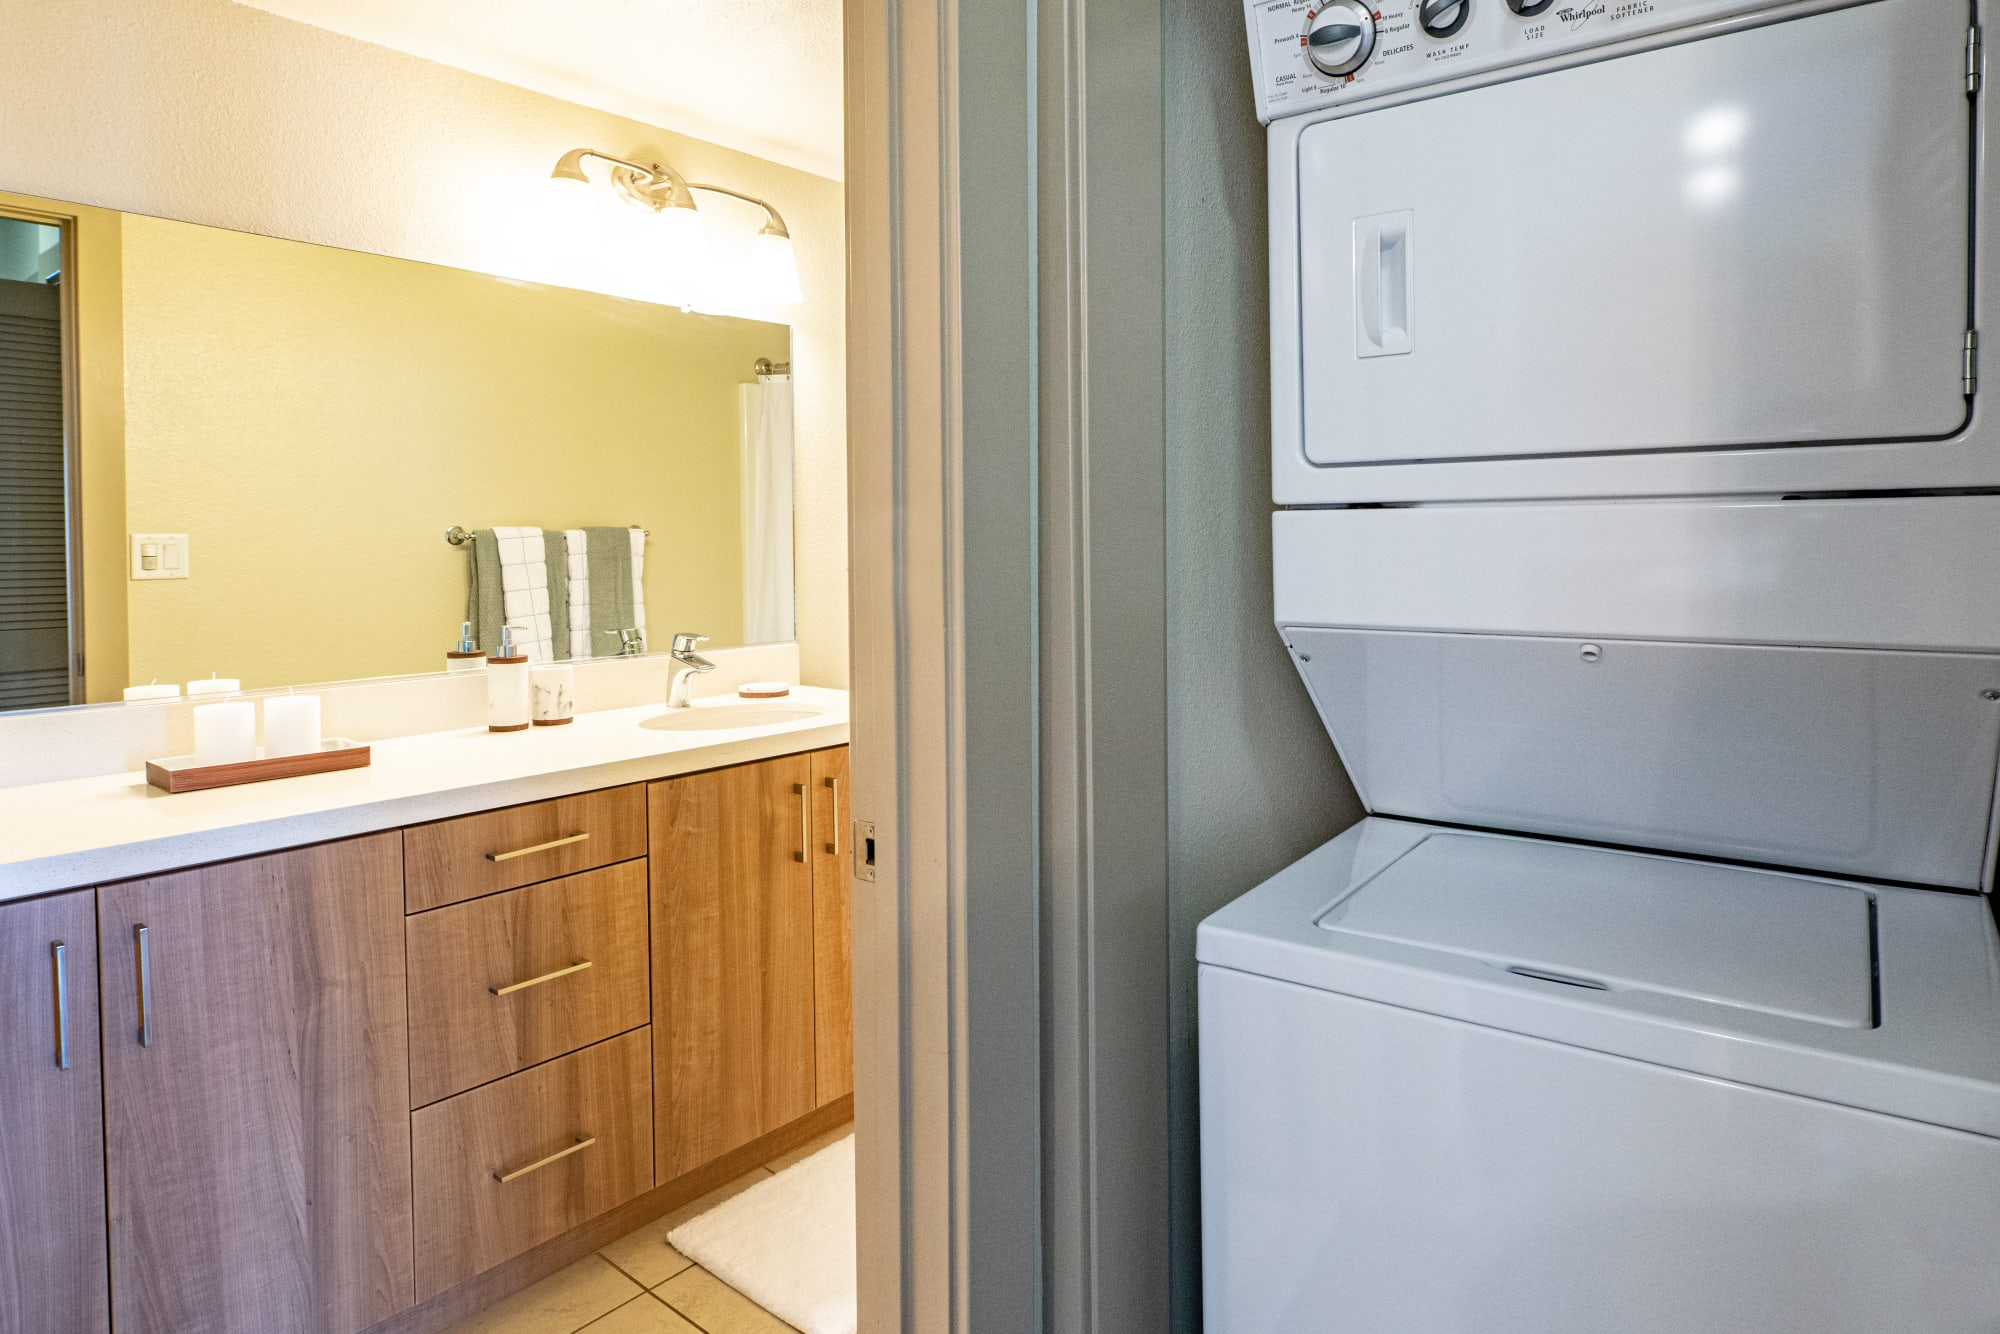 A washer and dryer outside a modern bathroom at Harborside Marina Bay Apartments in Marina del Rey, California